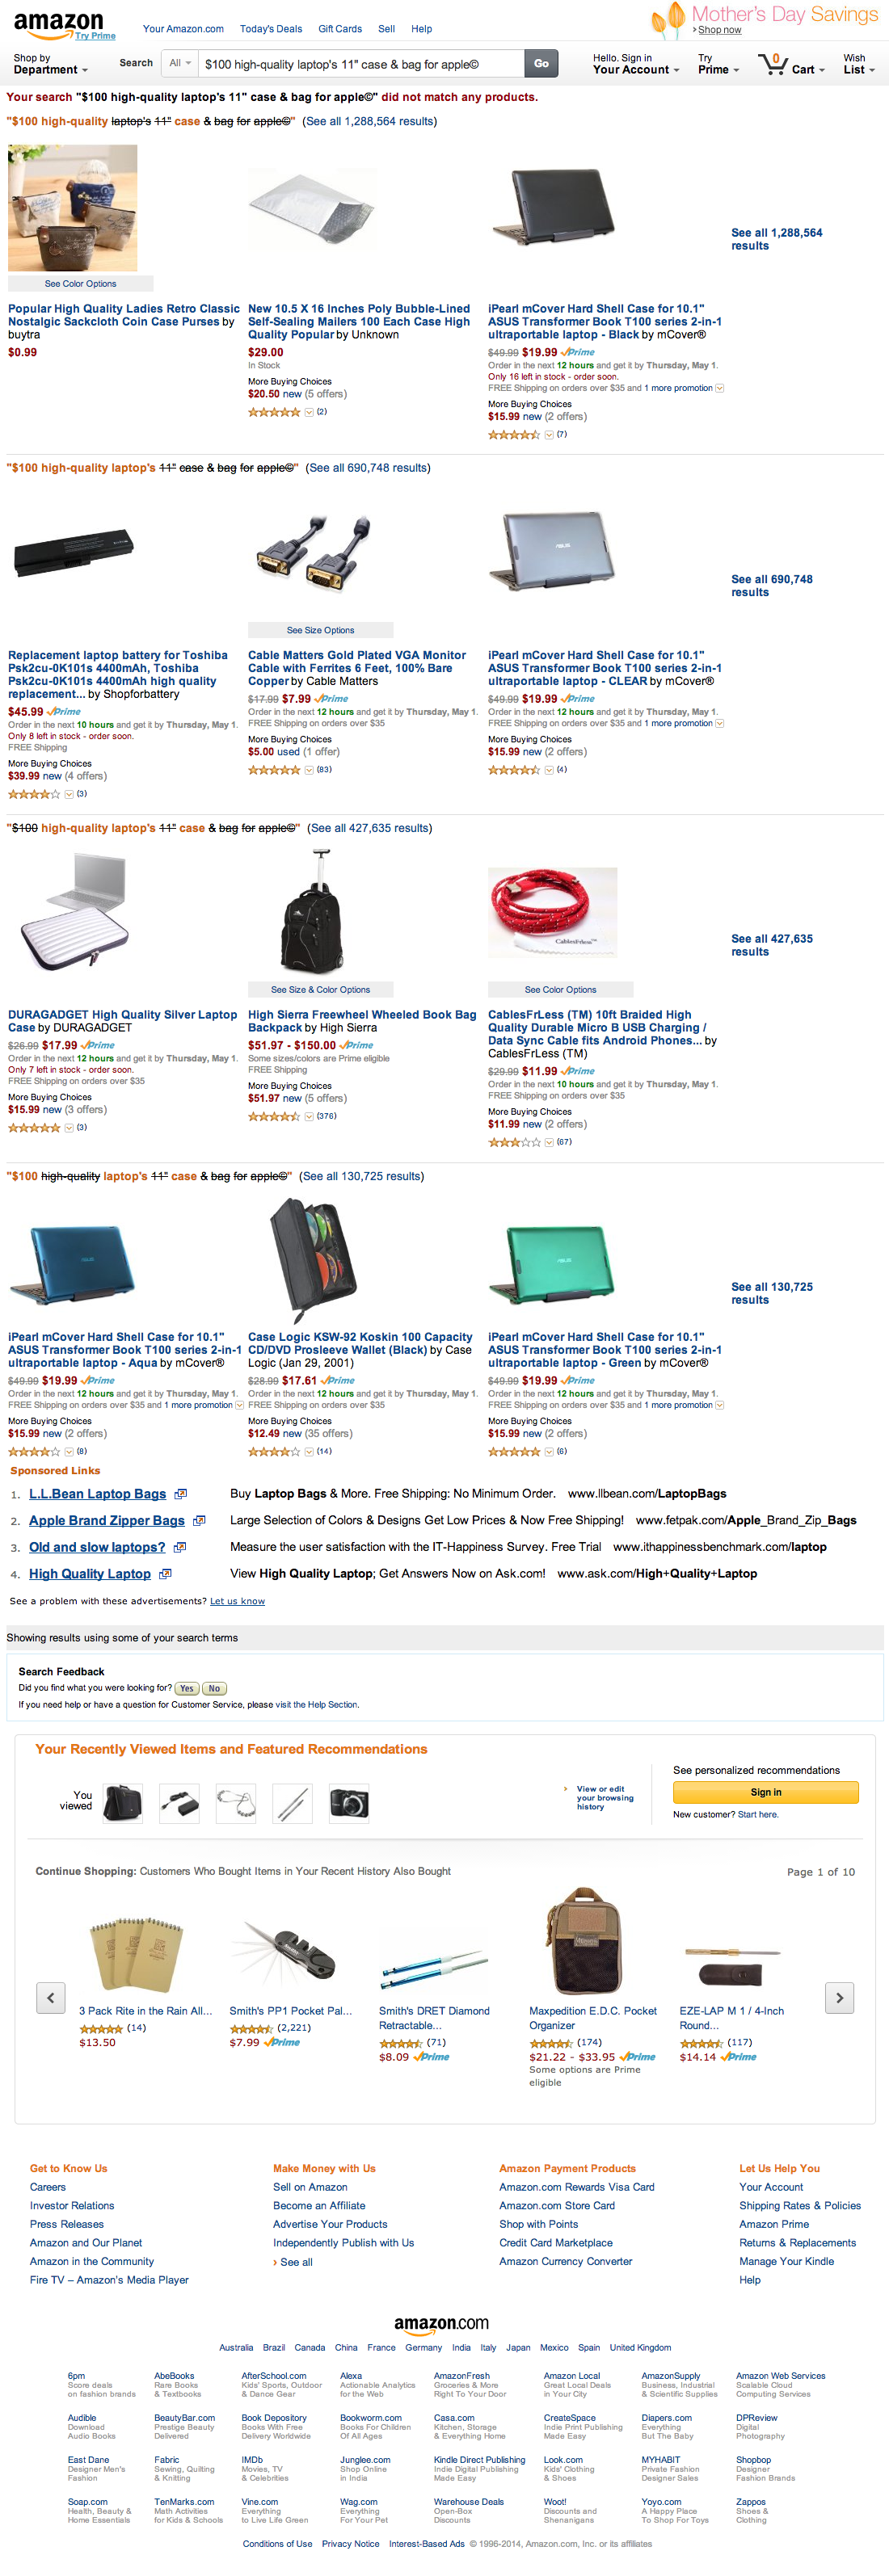 Amazon's No Results Page